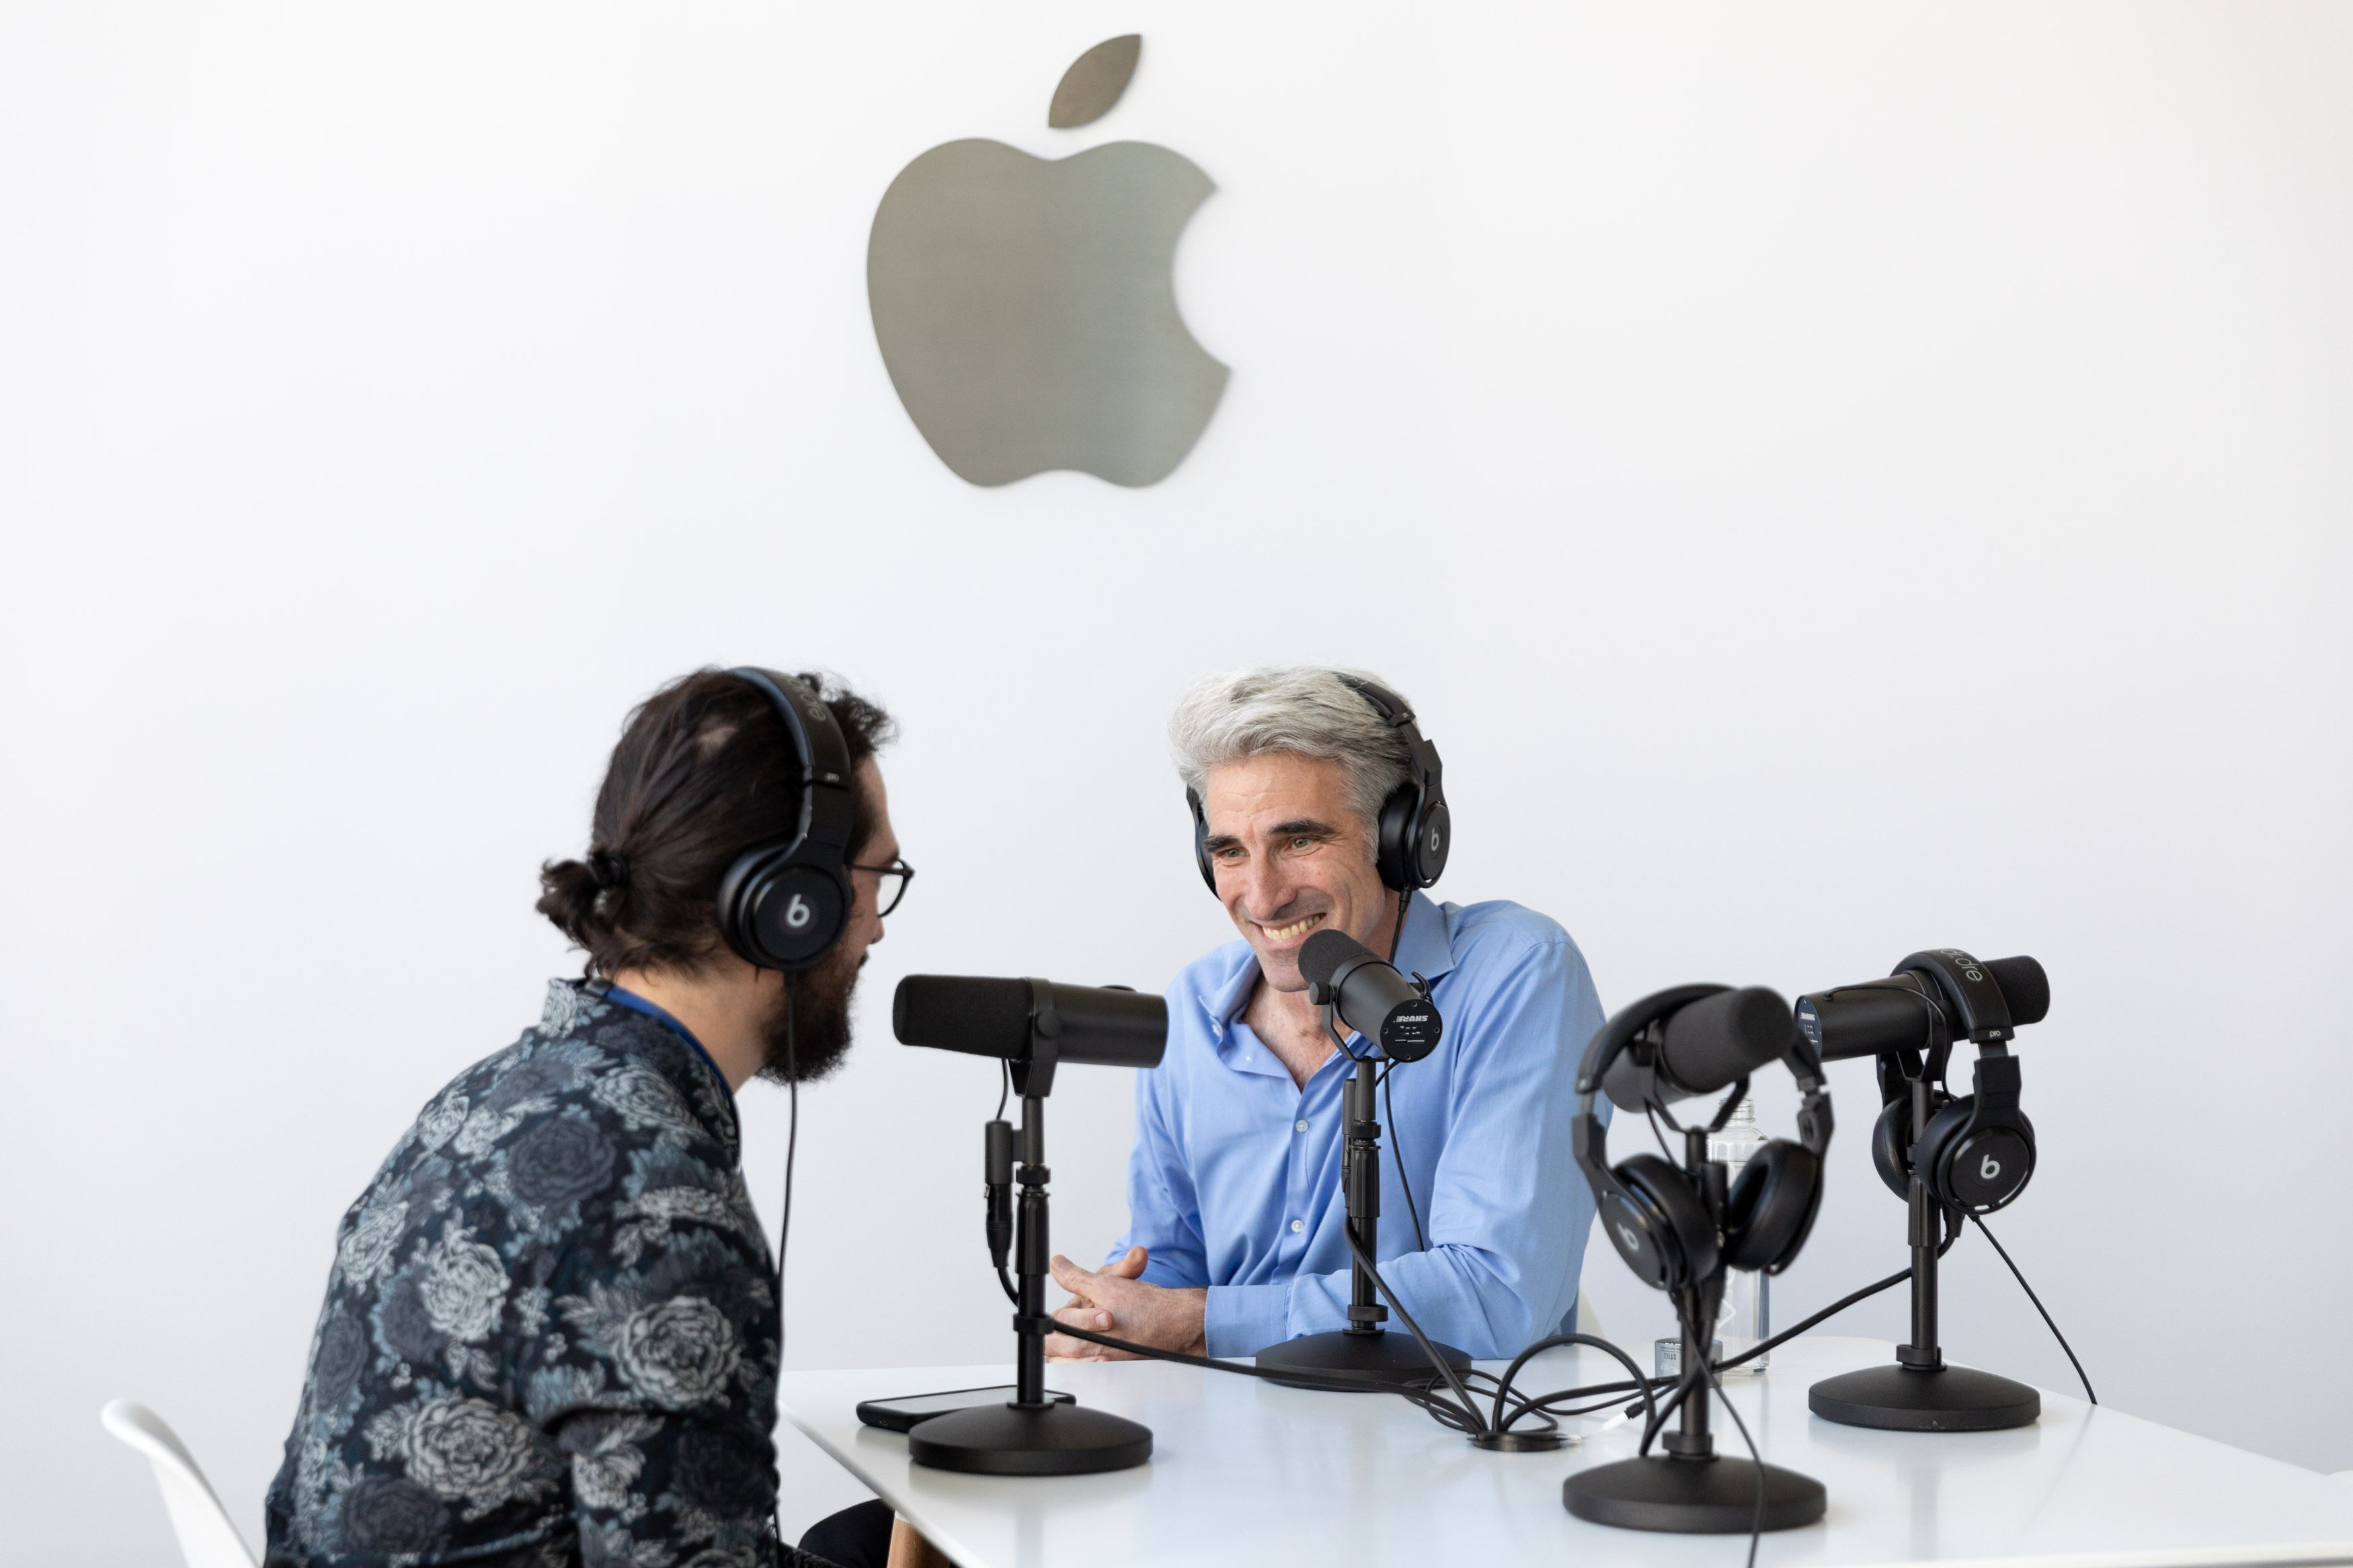 WWDC Podcasts: A Roundup of Episodes with Apple Special Guests